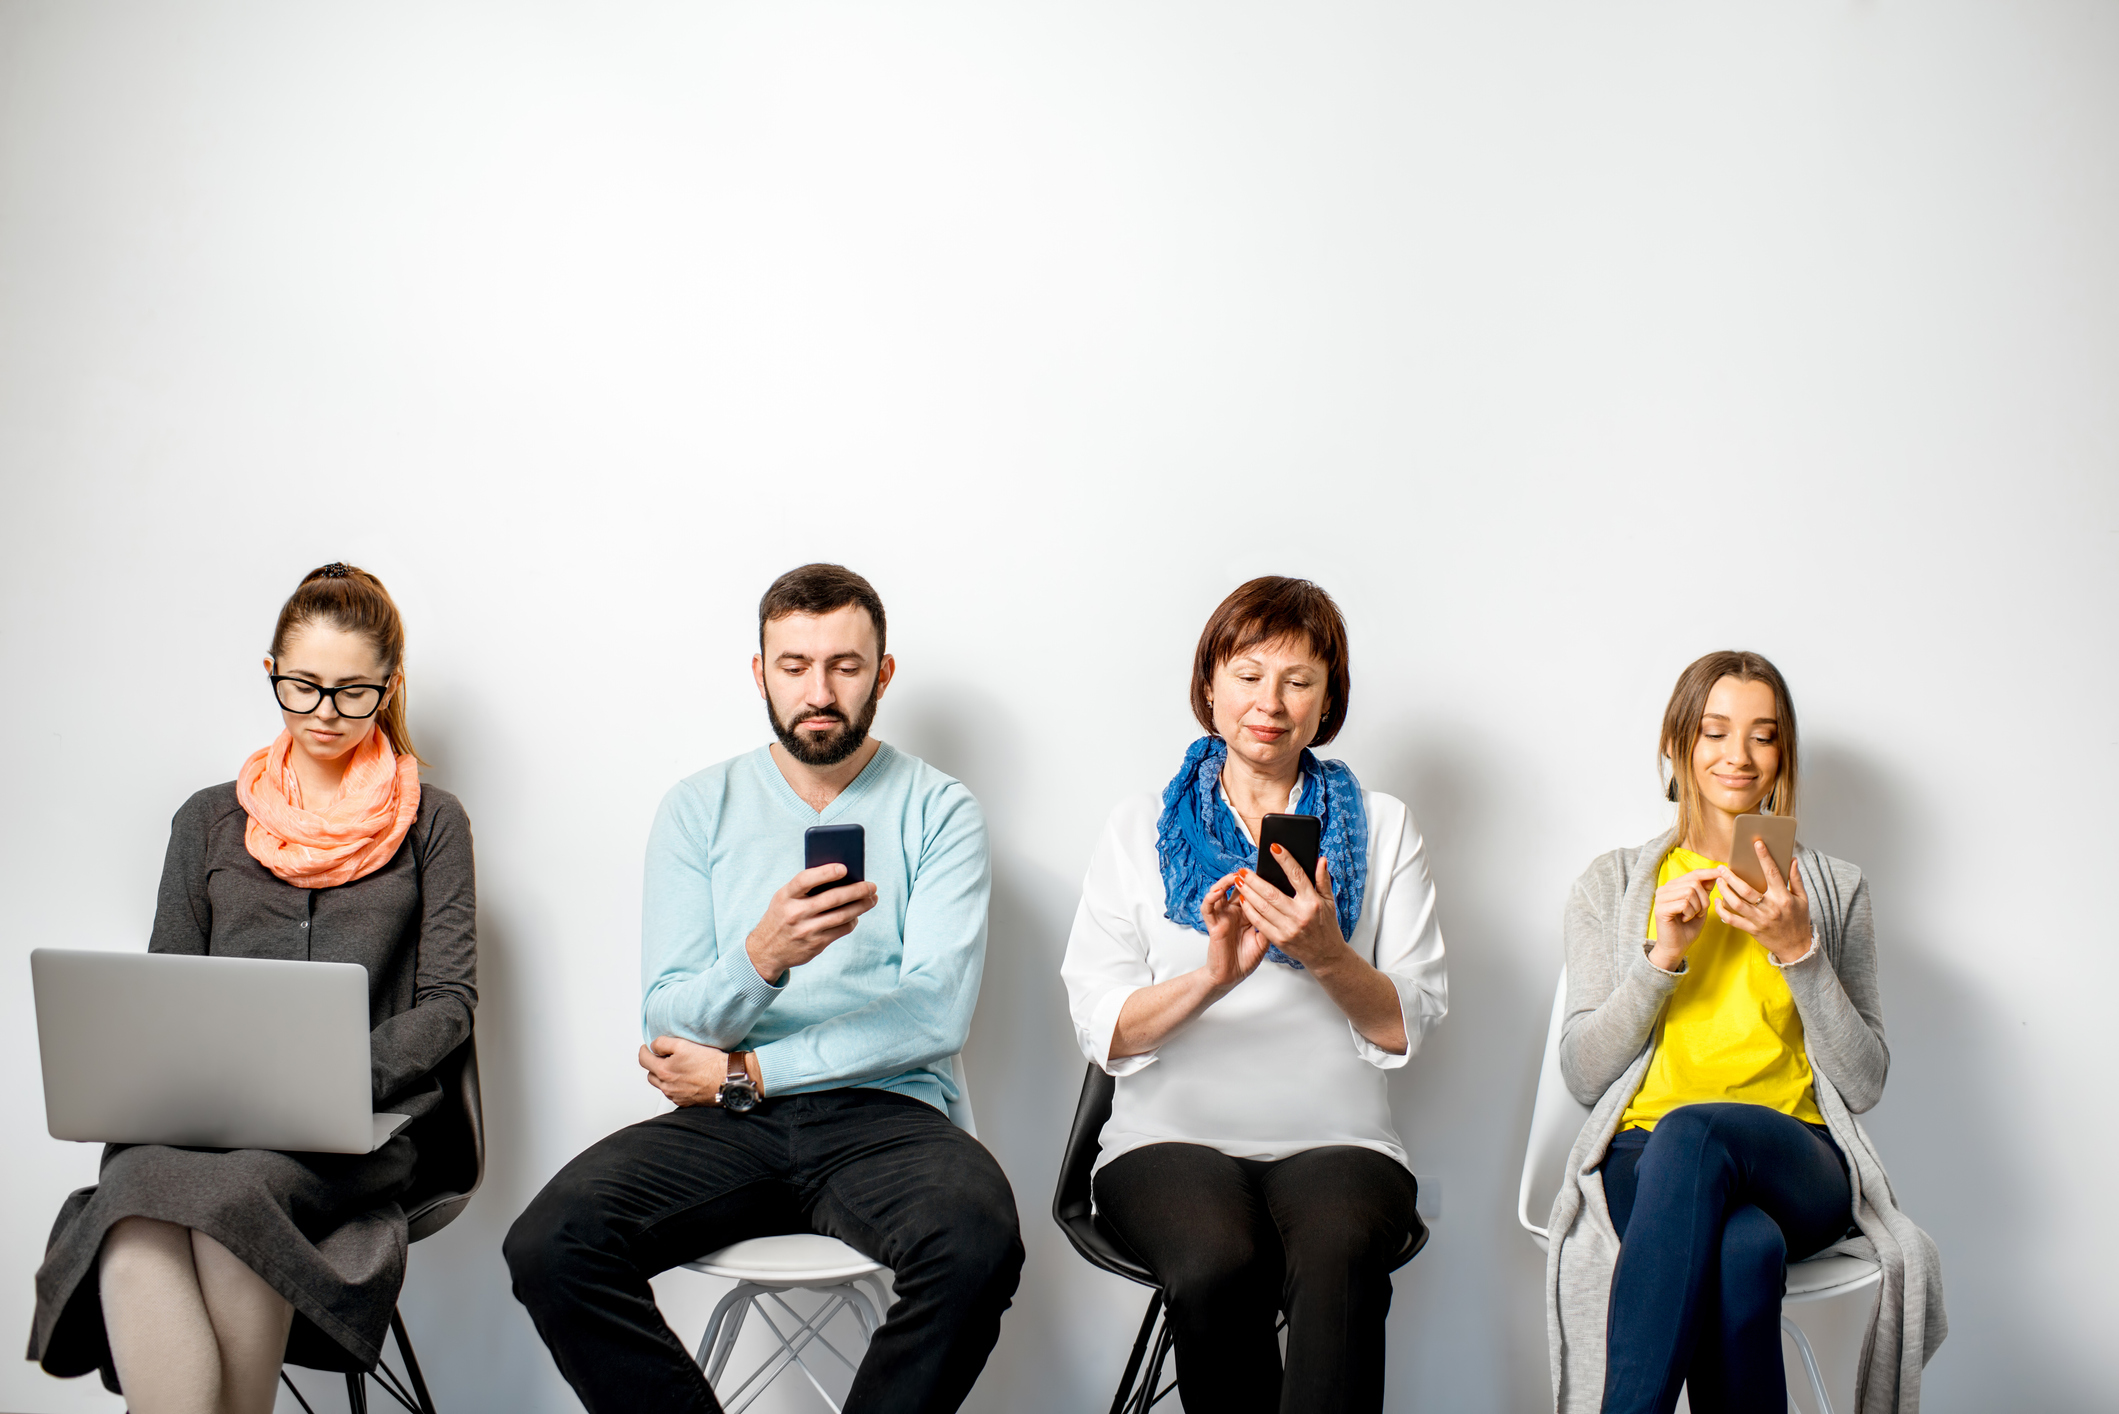 How Phones Compromise Our Ability to Connect